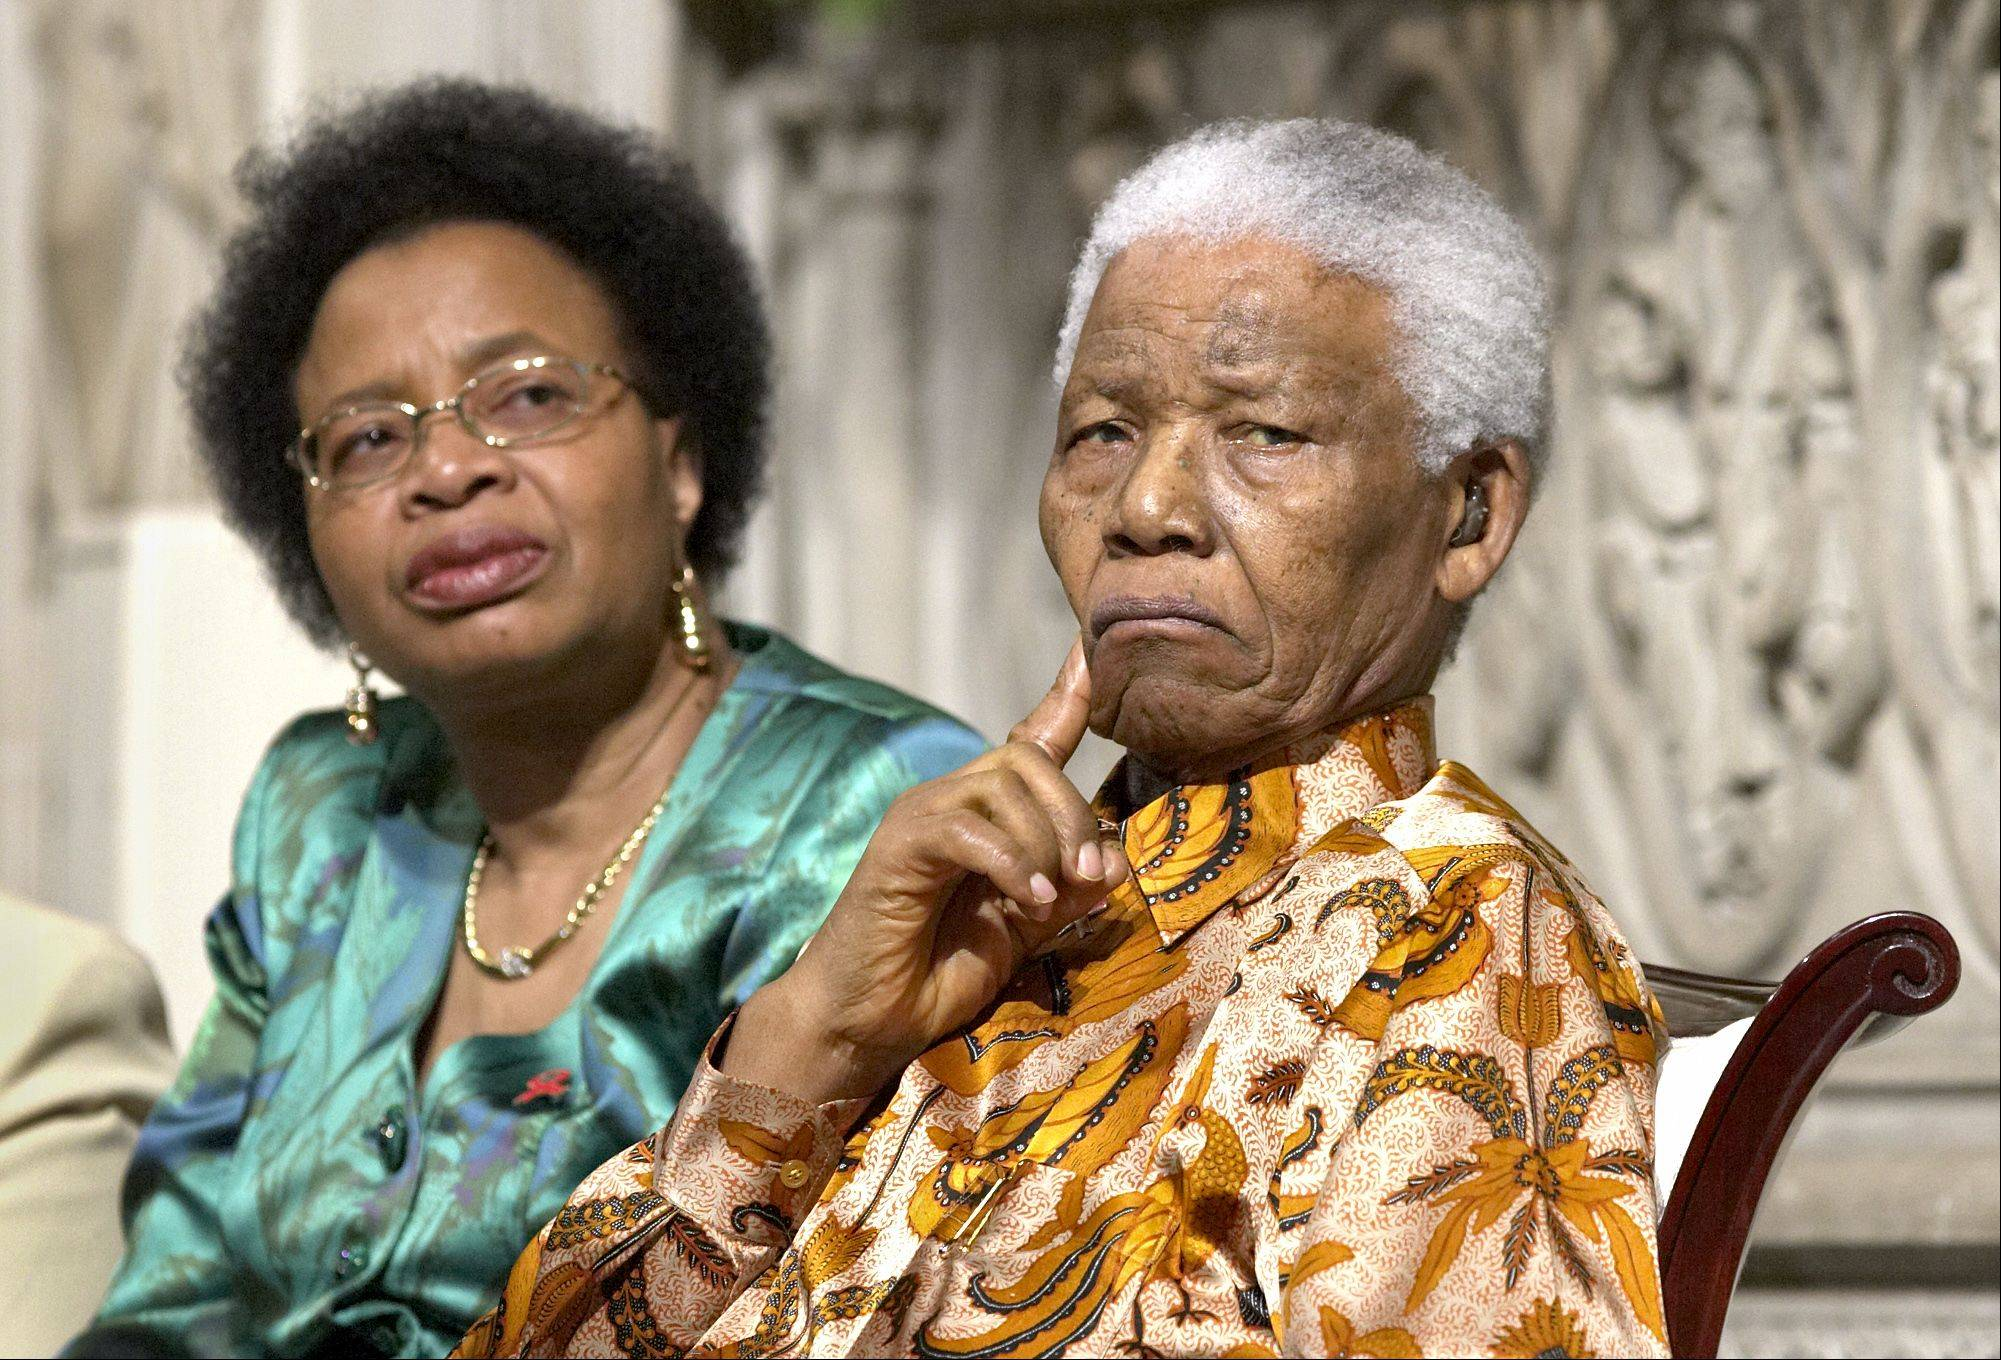 Former South African President Nelson Mandela, right, and his wife Graca Machel, left, attend Riverside Church in New York, on May 14, 2005.